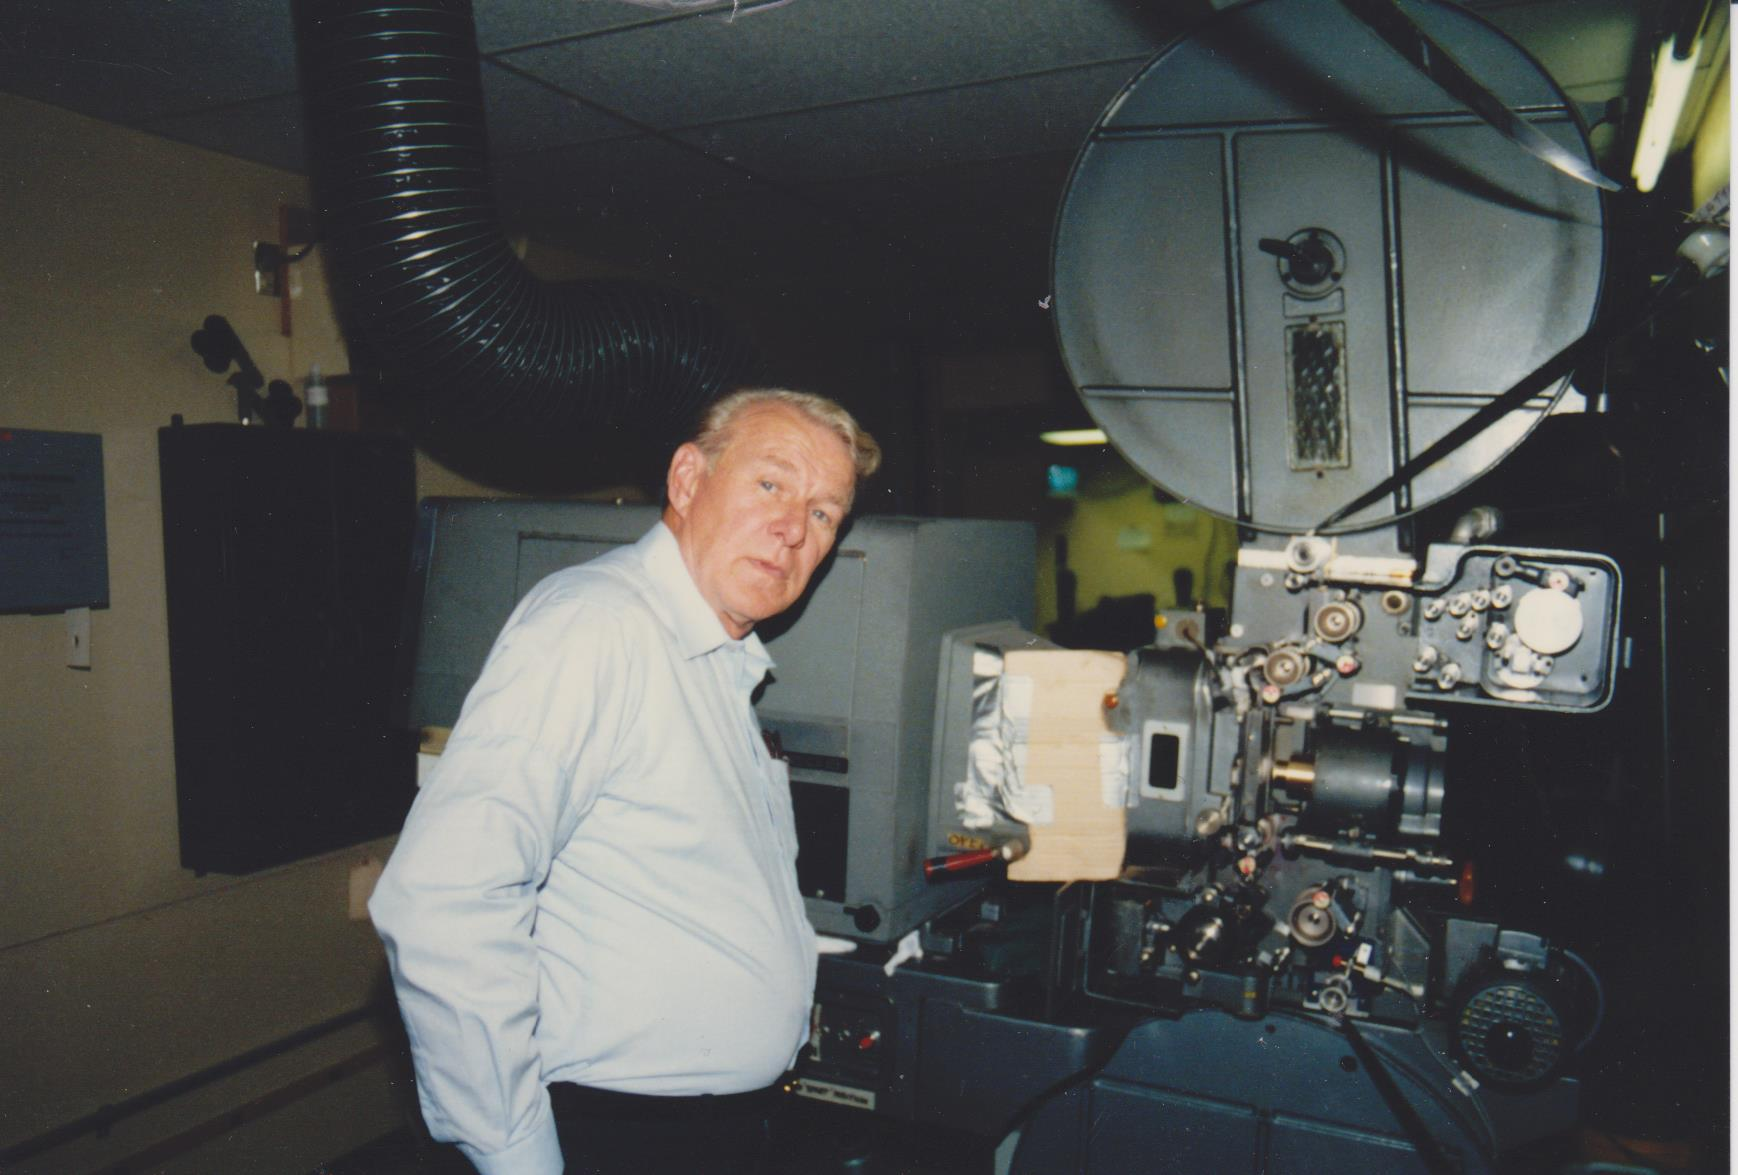 Older man turning towards the camera, standing next to projection equipment in a dimly lit booth.